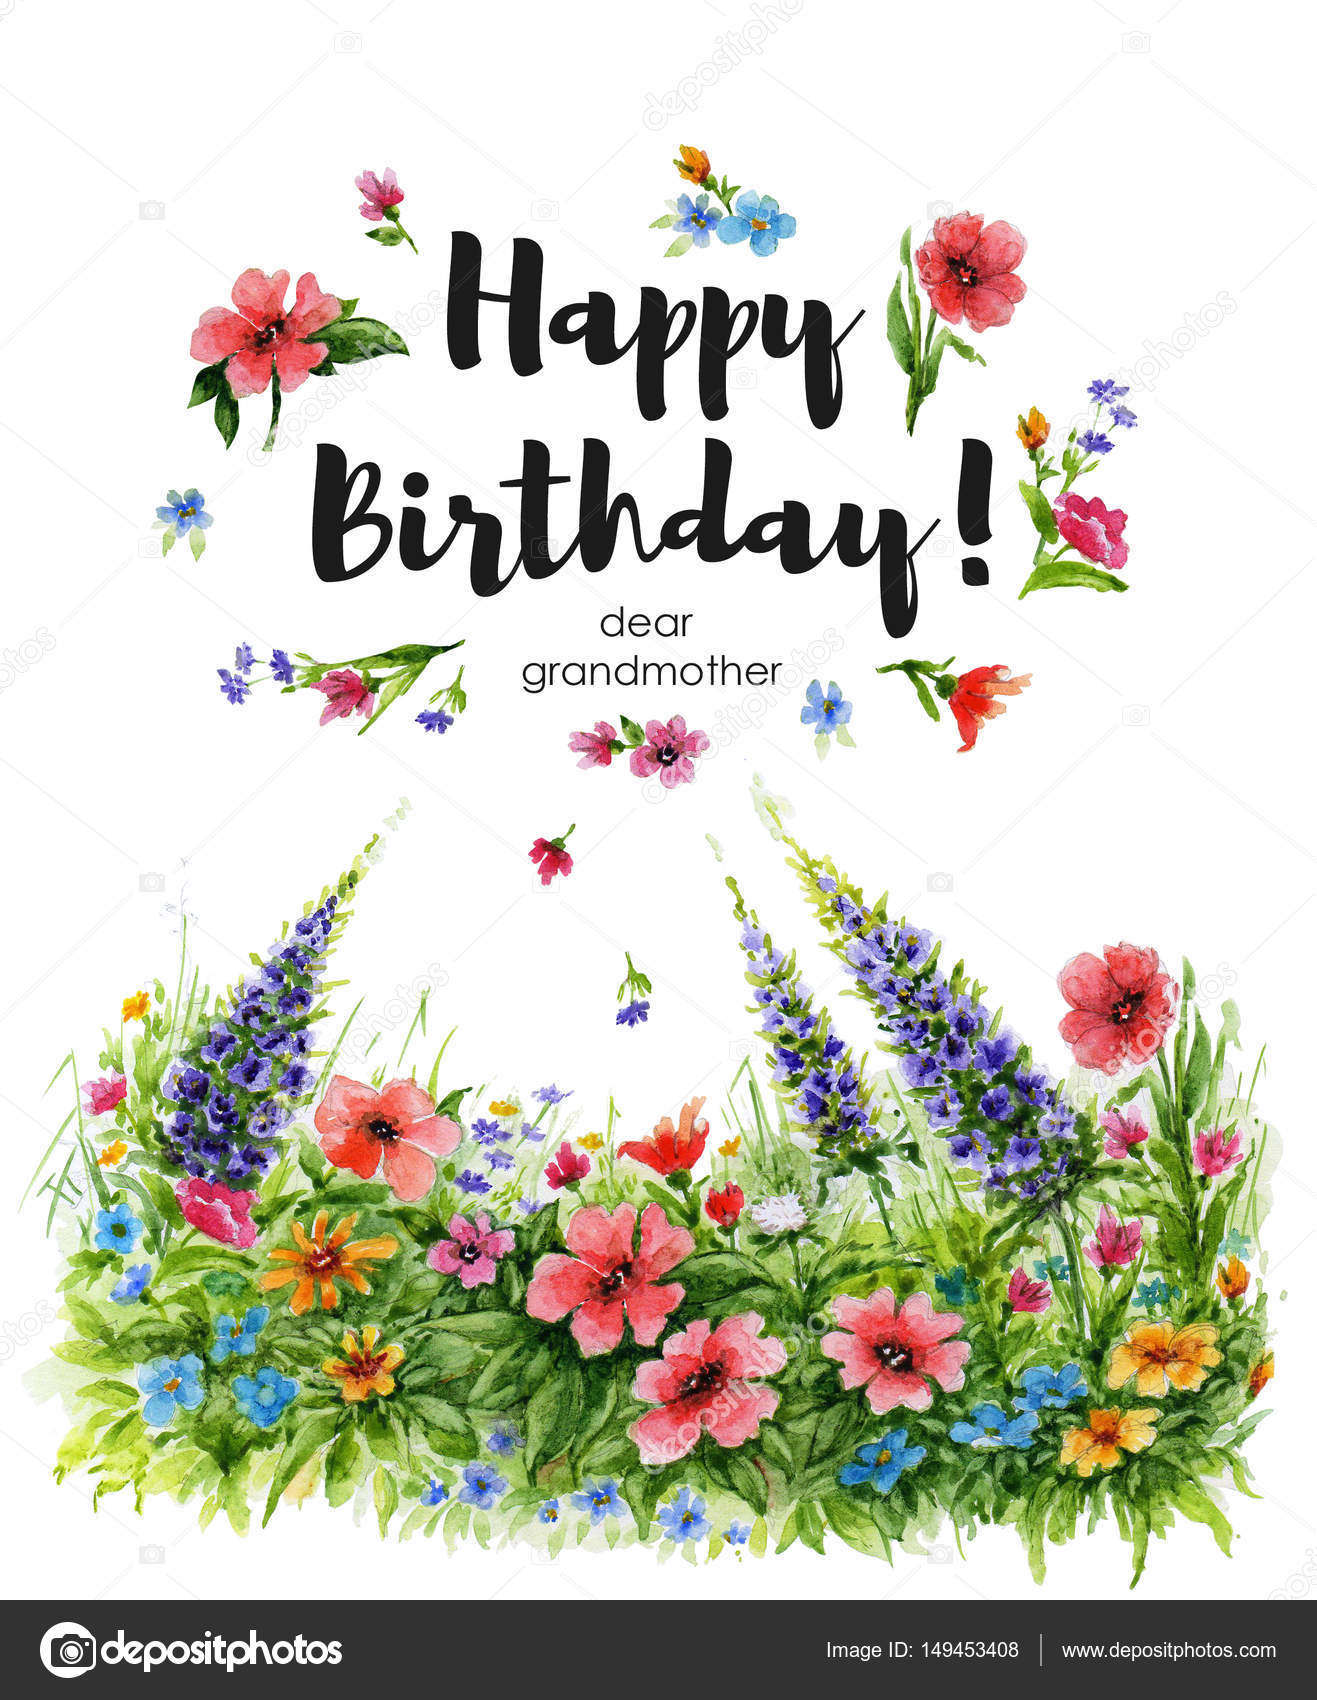 Greeting card happy birthday i love you watercolor illustration watercolor greeting card happy birthday dear grandmother with flower lawn and lettering in flower frame kristyandbryce Choice Image